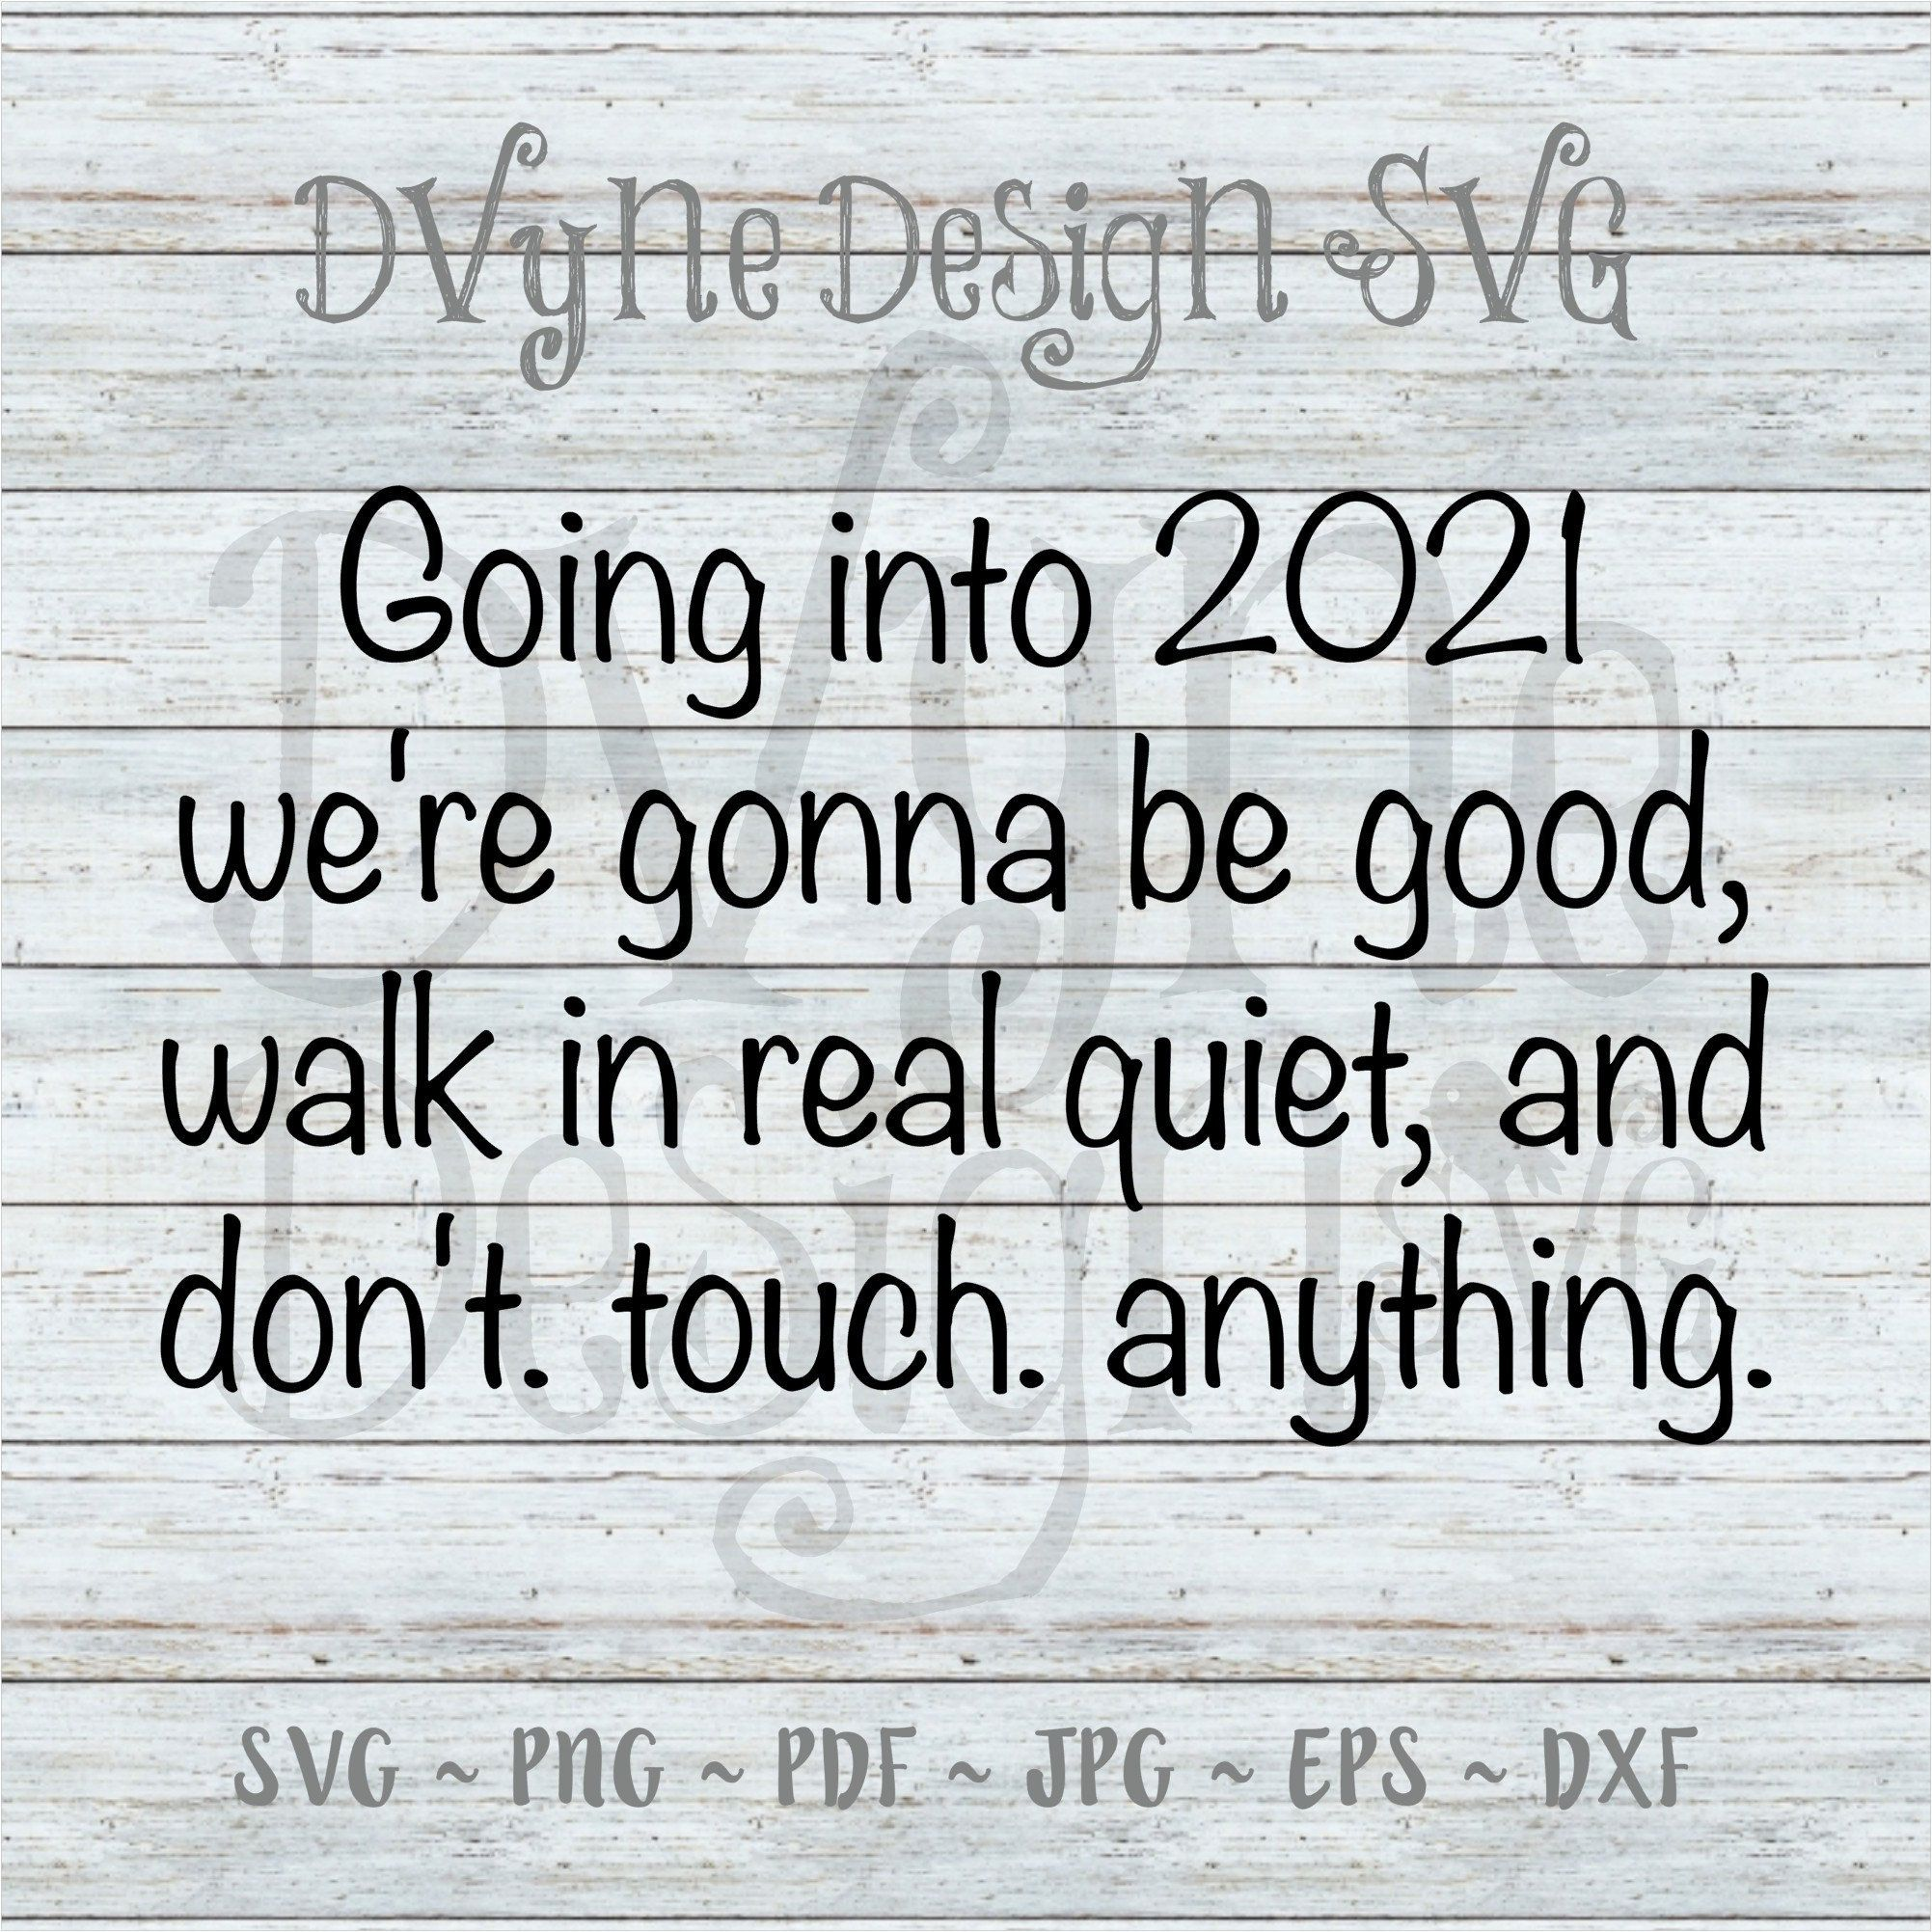 2021 New Year Svg Funny 2021 New Year S Eve Svg 2021 New Etsy Quotes About New Year New Years Eve Quotes Funny New Year